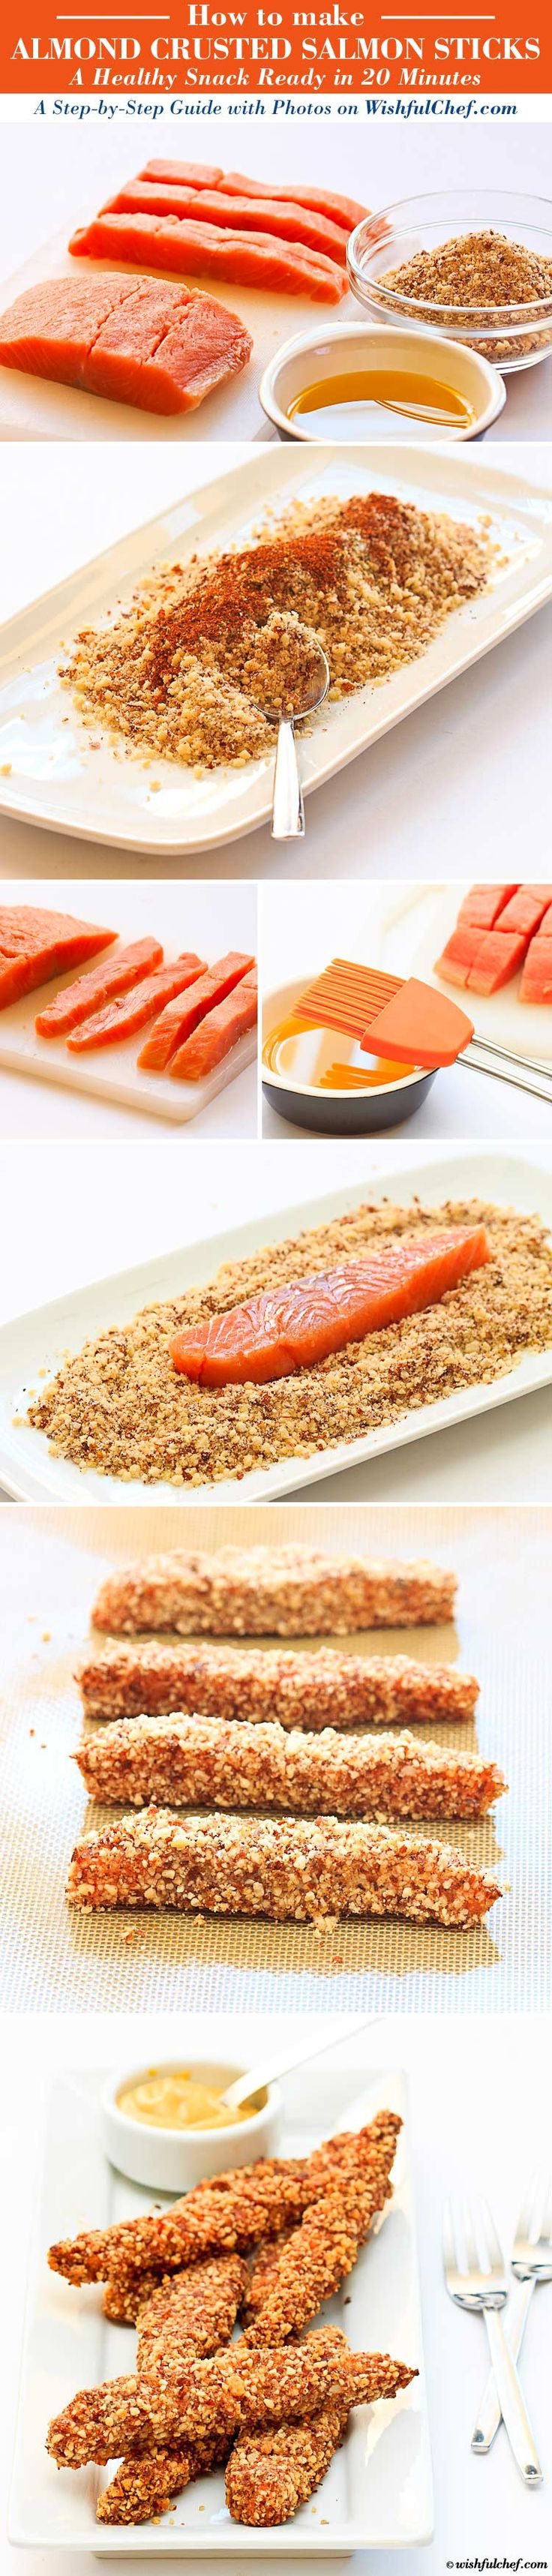 Almond Crusted Salmon Sticks - A Healthy Snack in 20 Minutes